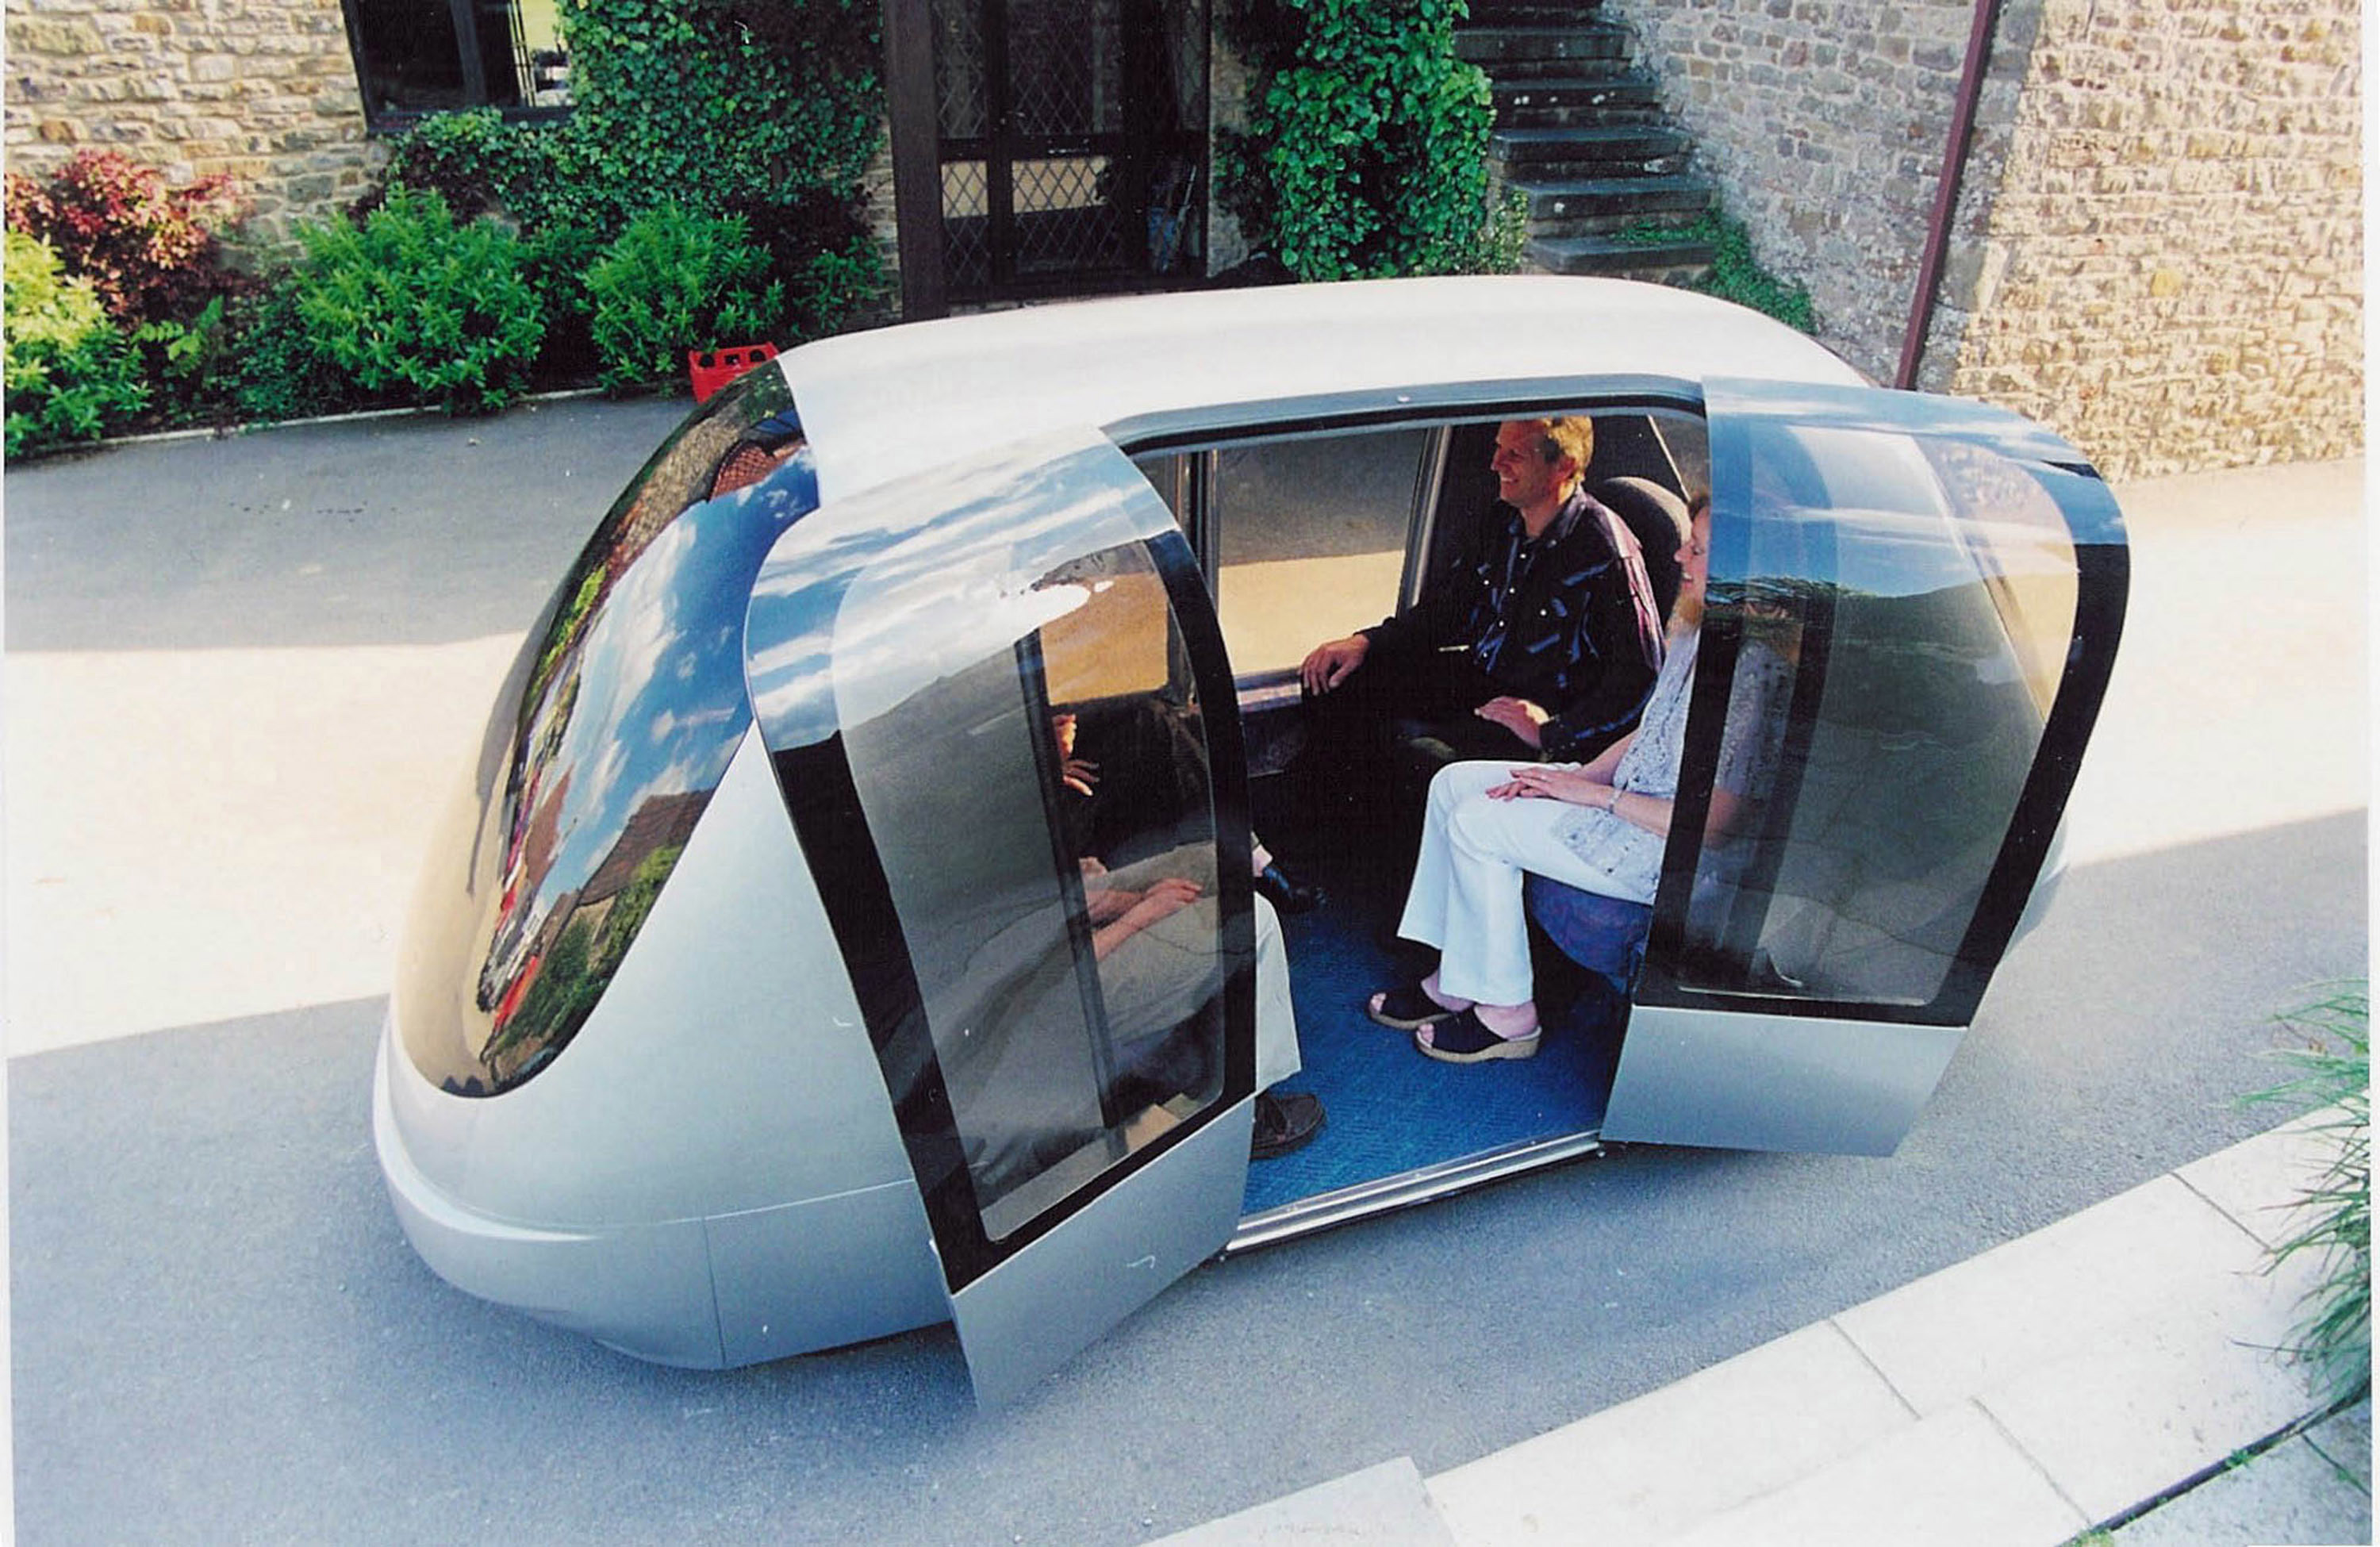 Will the day come where we push a button and a car like this shows up at our door?